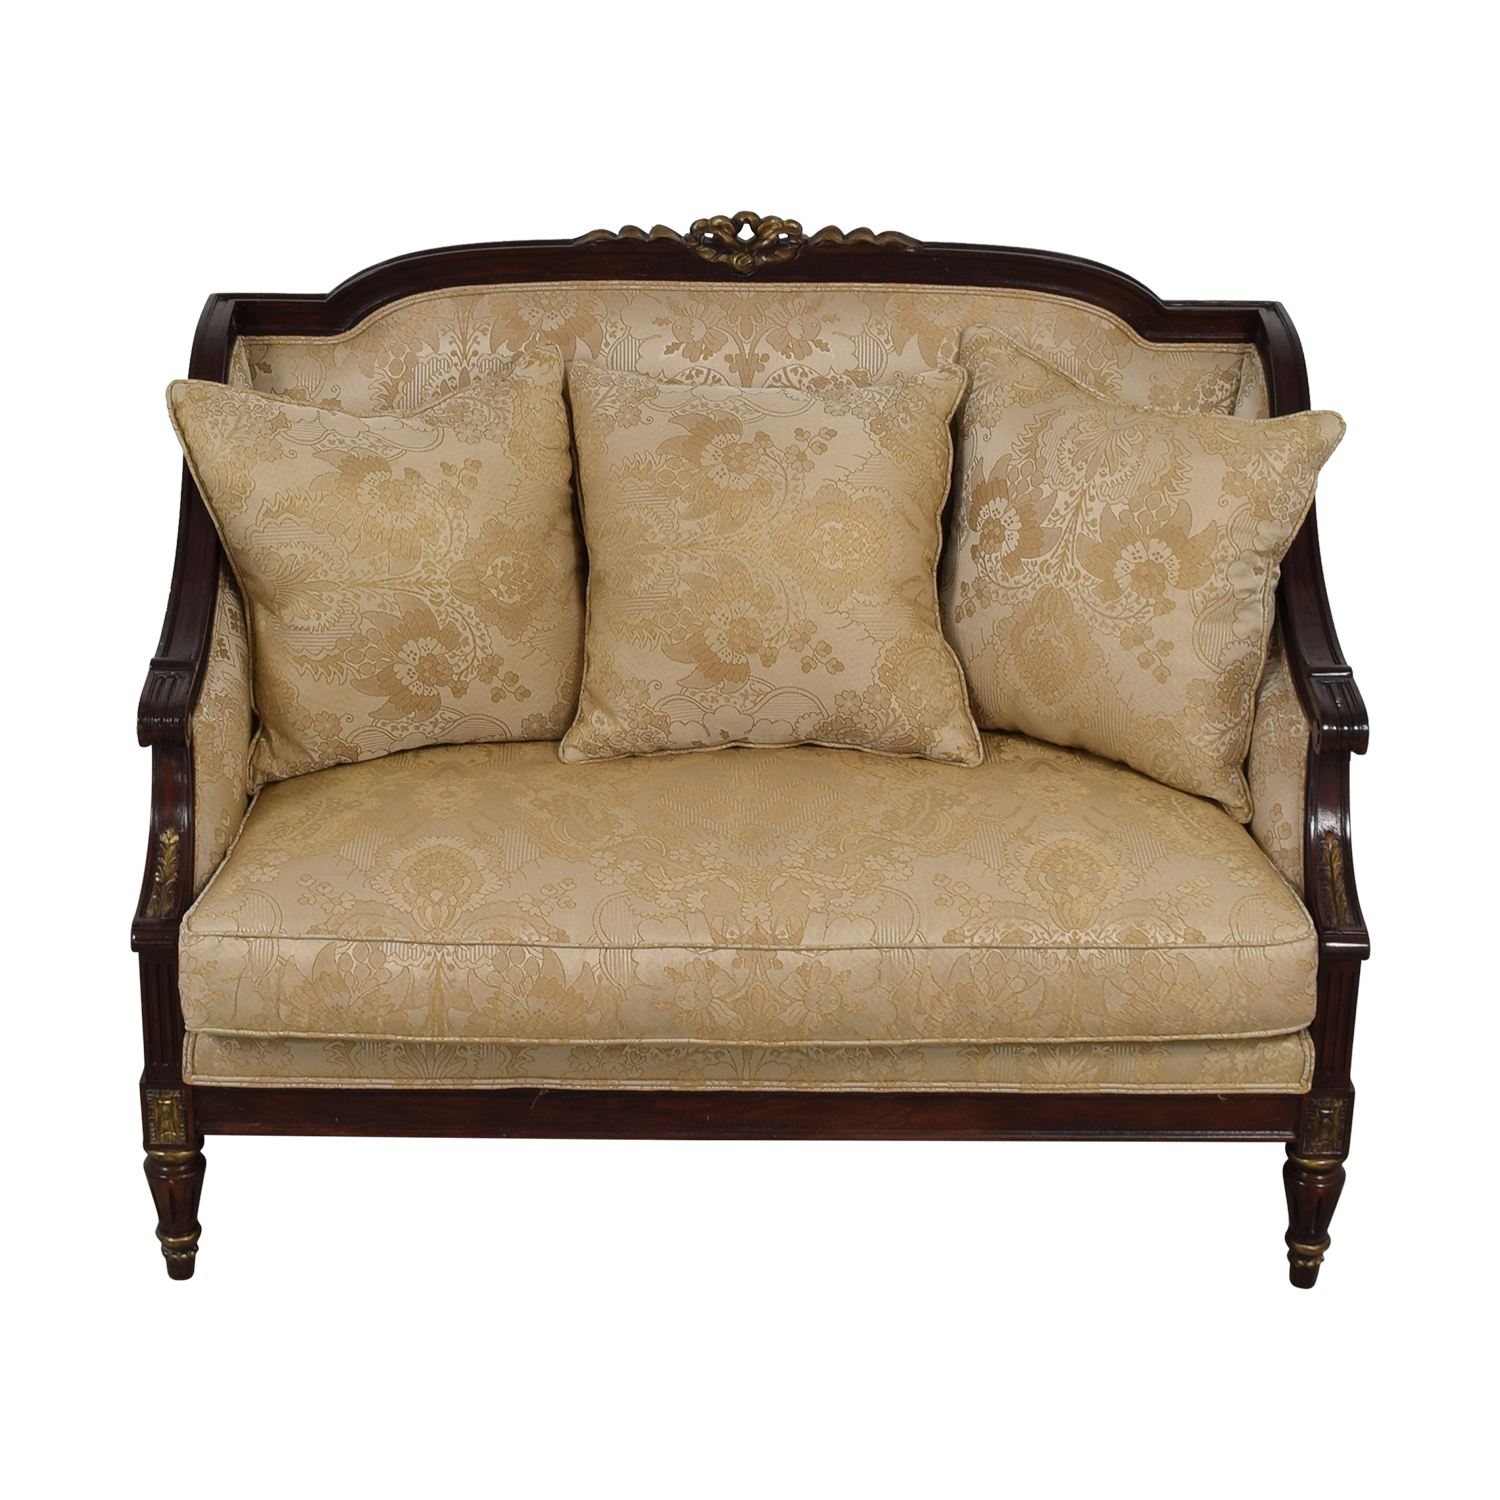 Jeffco Furniture Jeffco Furniture Beige Jacquard and Wood Love Seat coupon